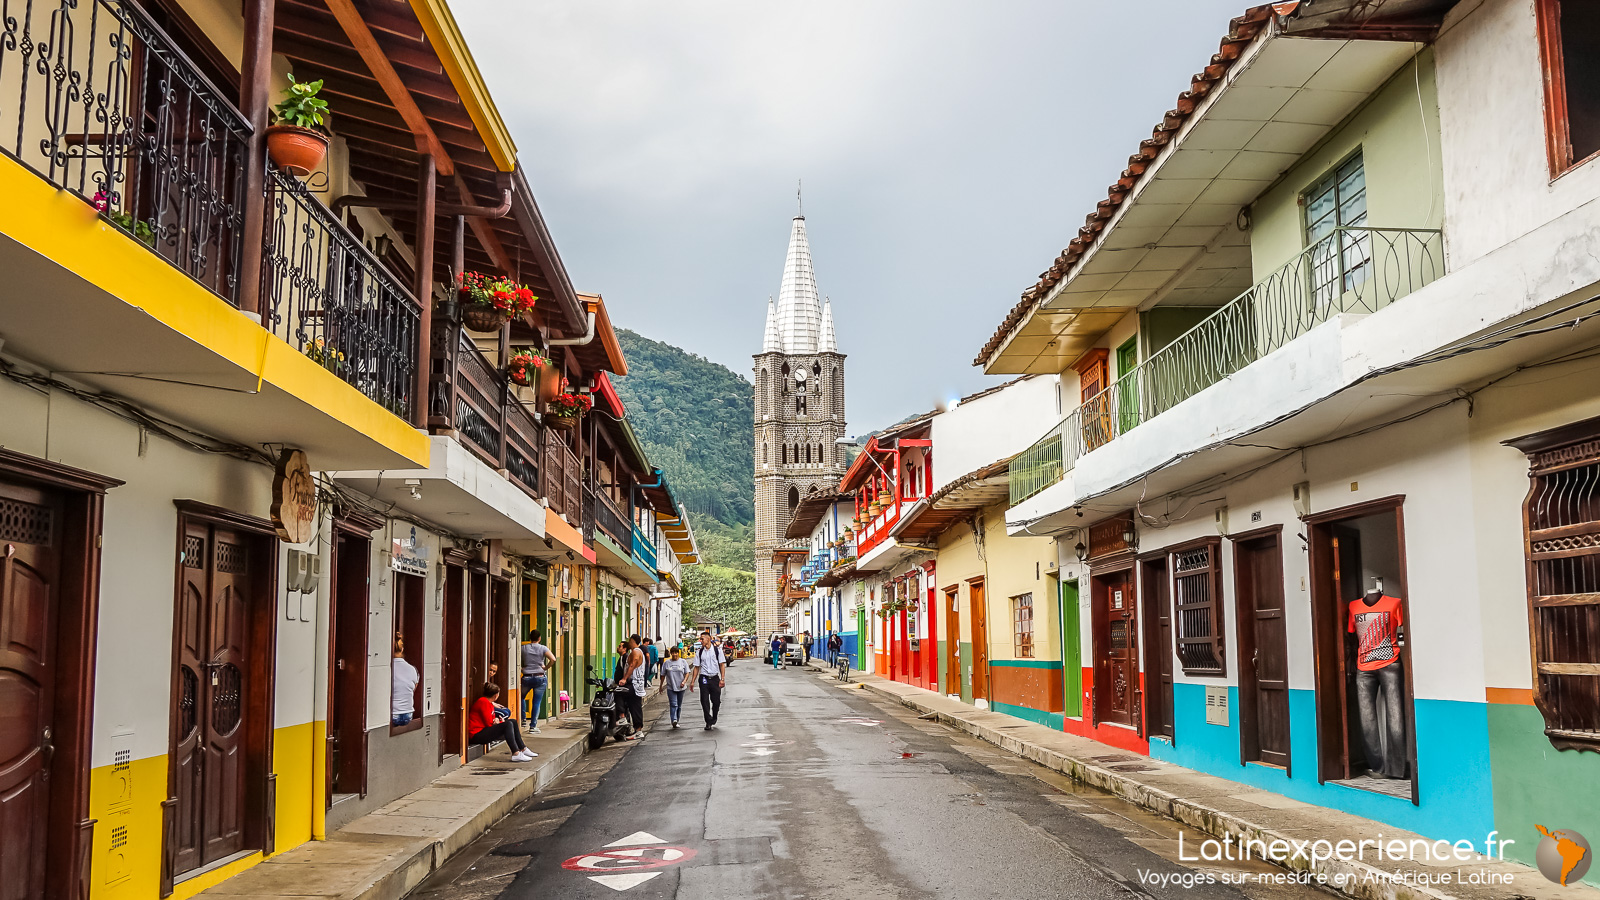 Colombie - Jardin - Latinexperience voyages